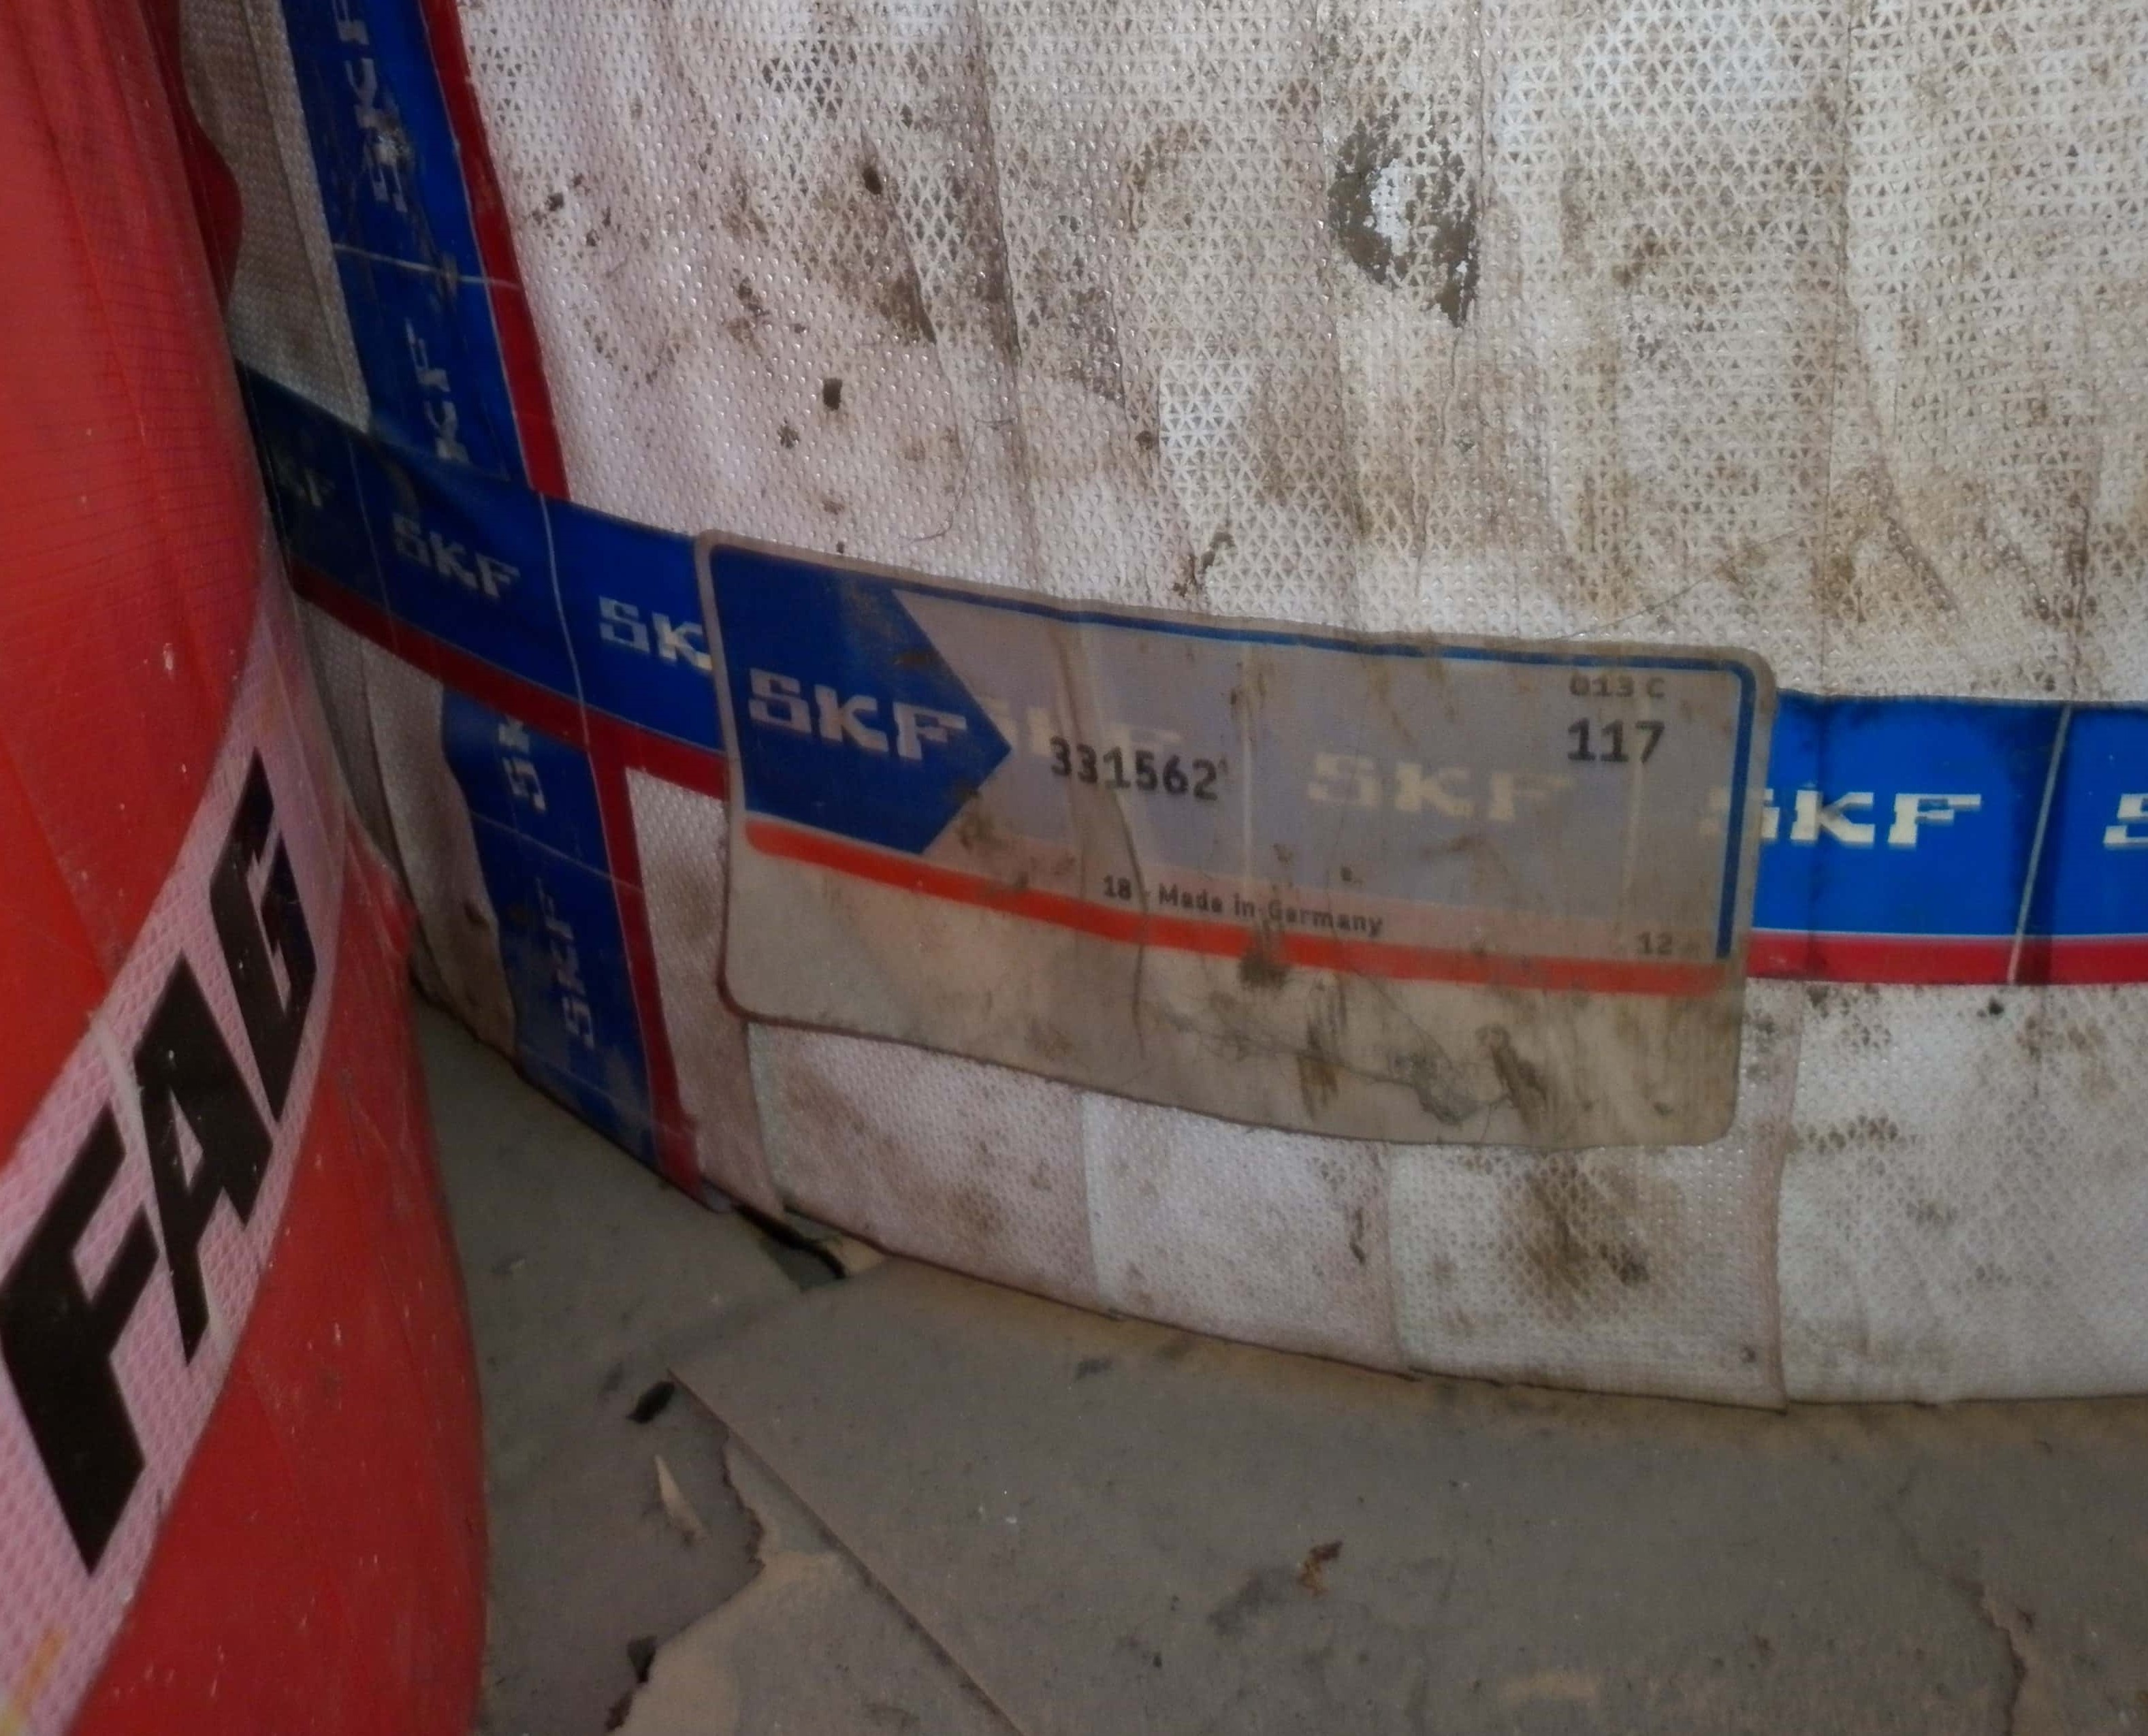 SKF 331562 Double Row Taper Roller Bearing